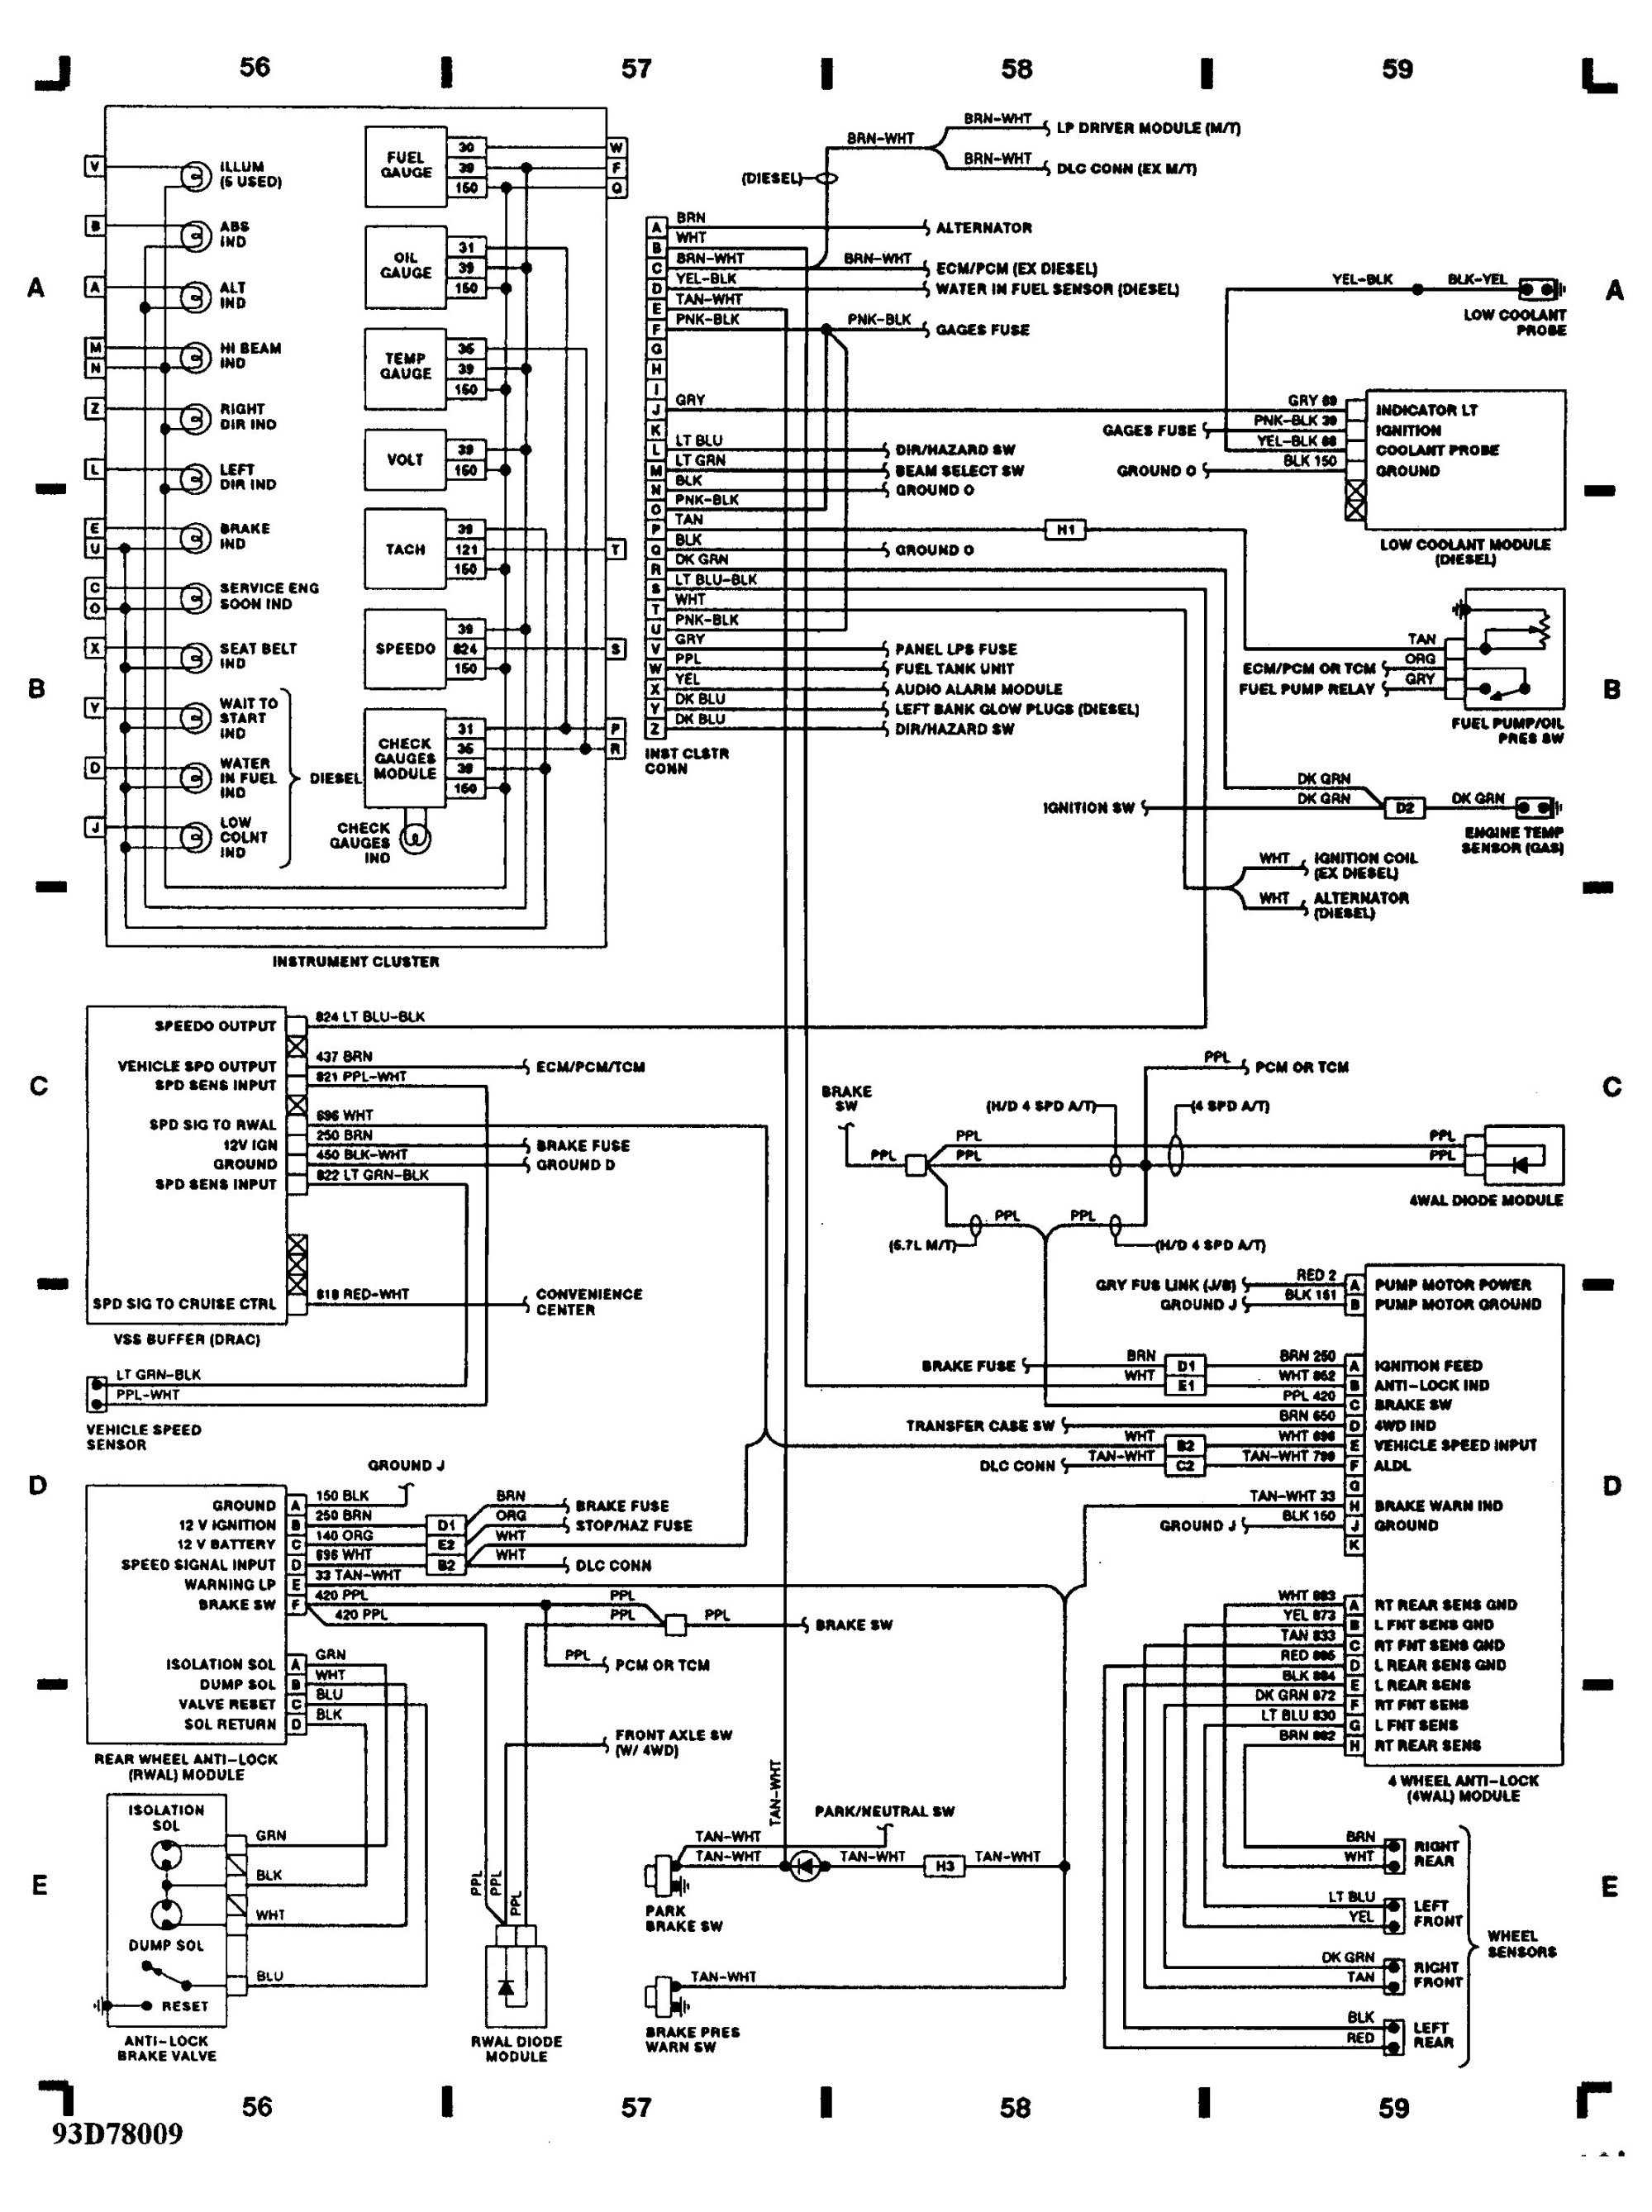 hight resolution of chevy 5 3 wiring harness wiring diagram expert chevy 4 3 wiring harness